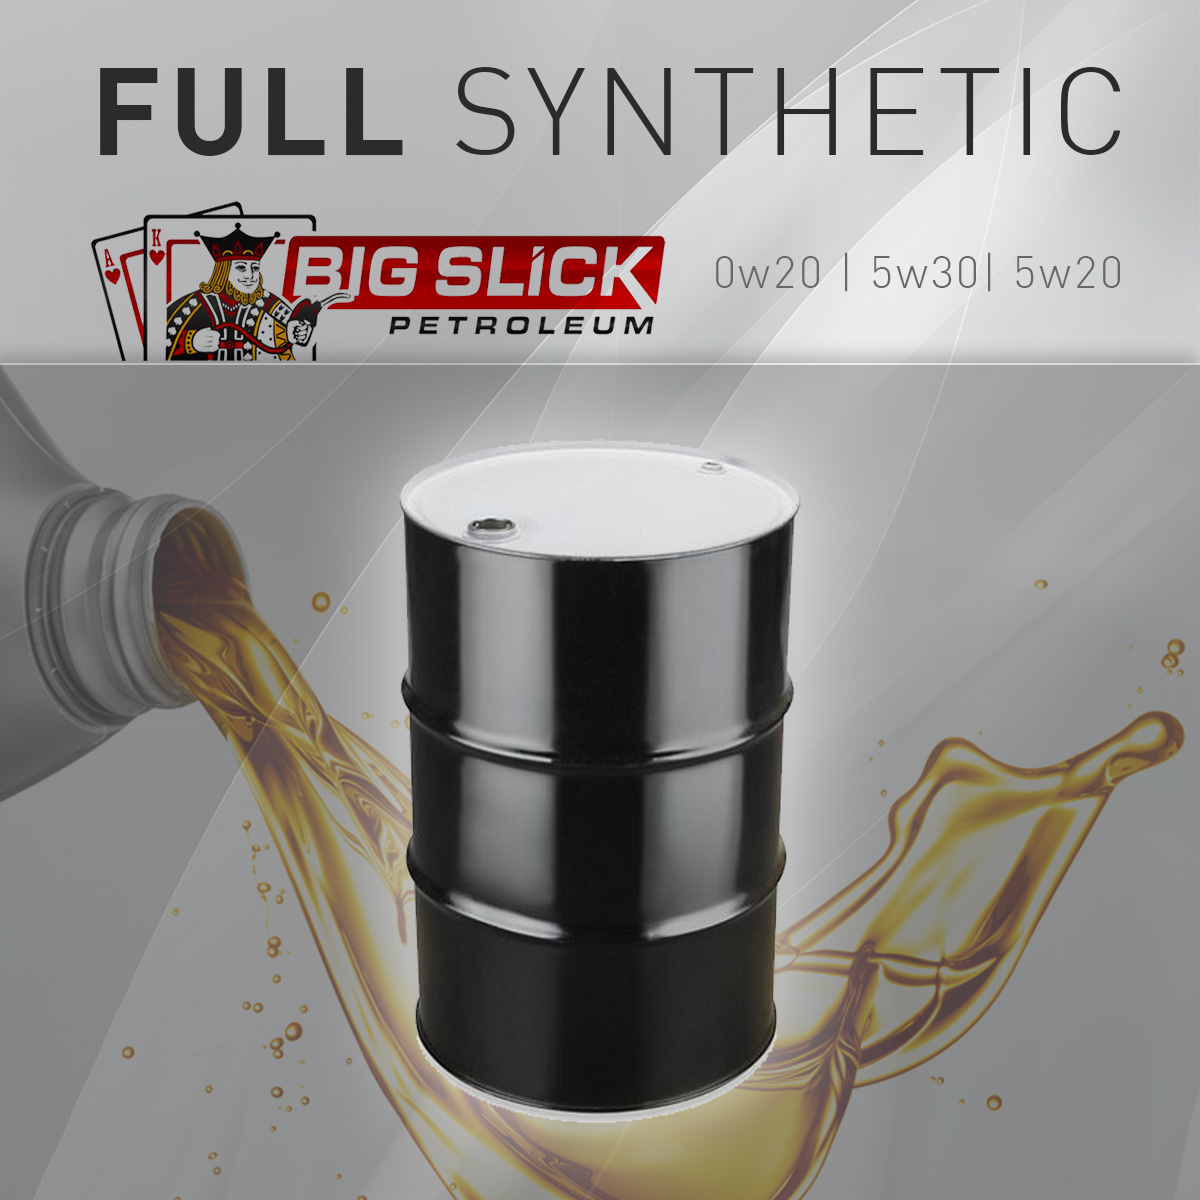 Whats The Difference Between 5w20 And 5w30 >> Full Synthetic Motor Oil 0w20 5w30 5w20 Drum Barrel